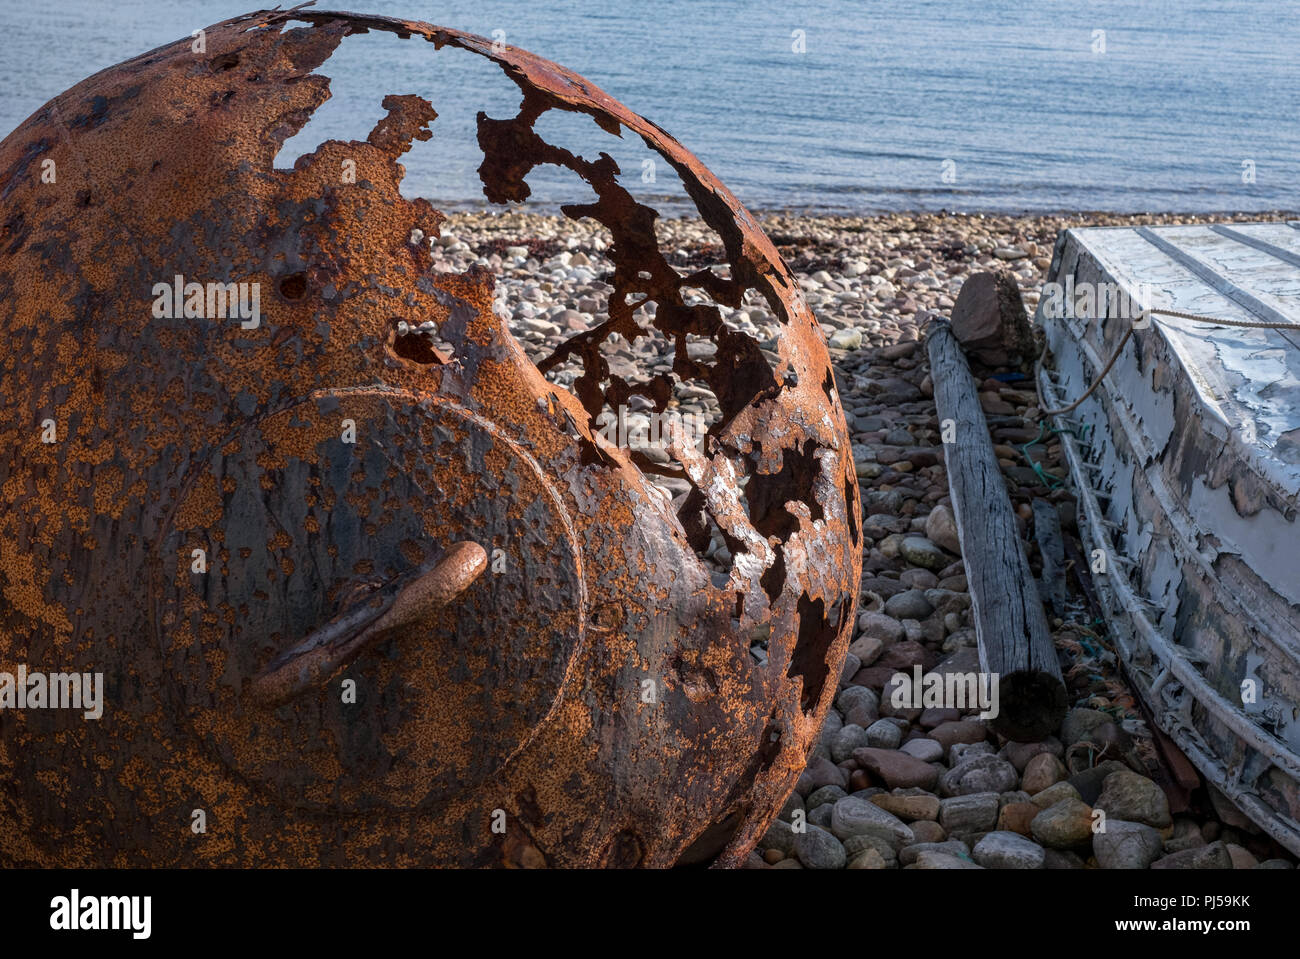 Rusty buoy on the beach at Polbain, north of Ullapool, on the west coast of Scotland. - Stock Image